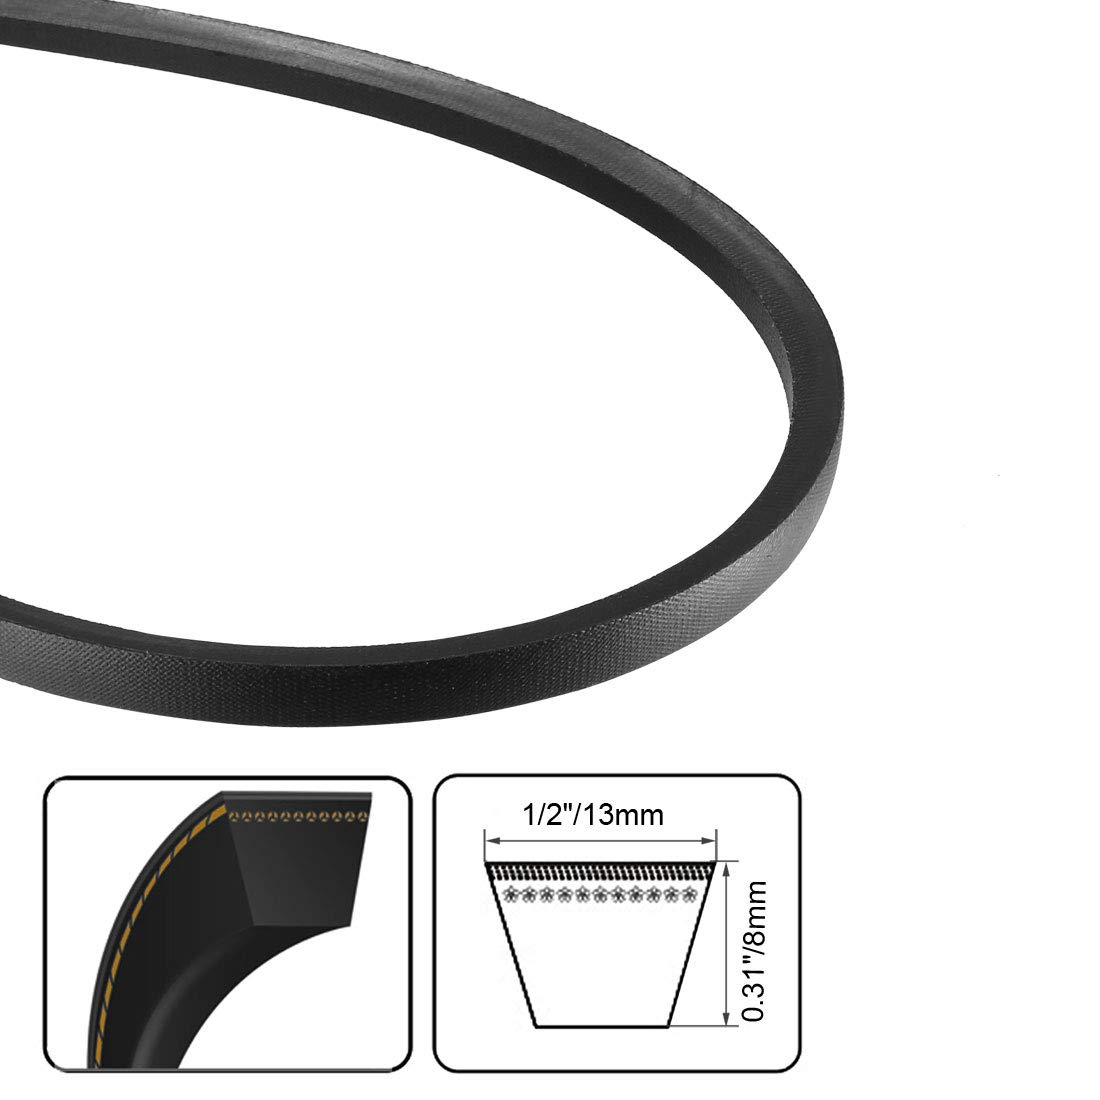 uxcell/® A-37 Drive V-Belt Girth 37-inch Industrial Power Rubber Transmission Belt